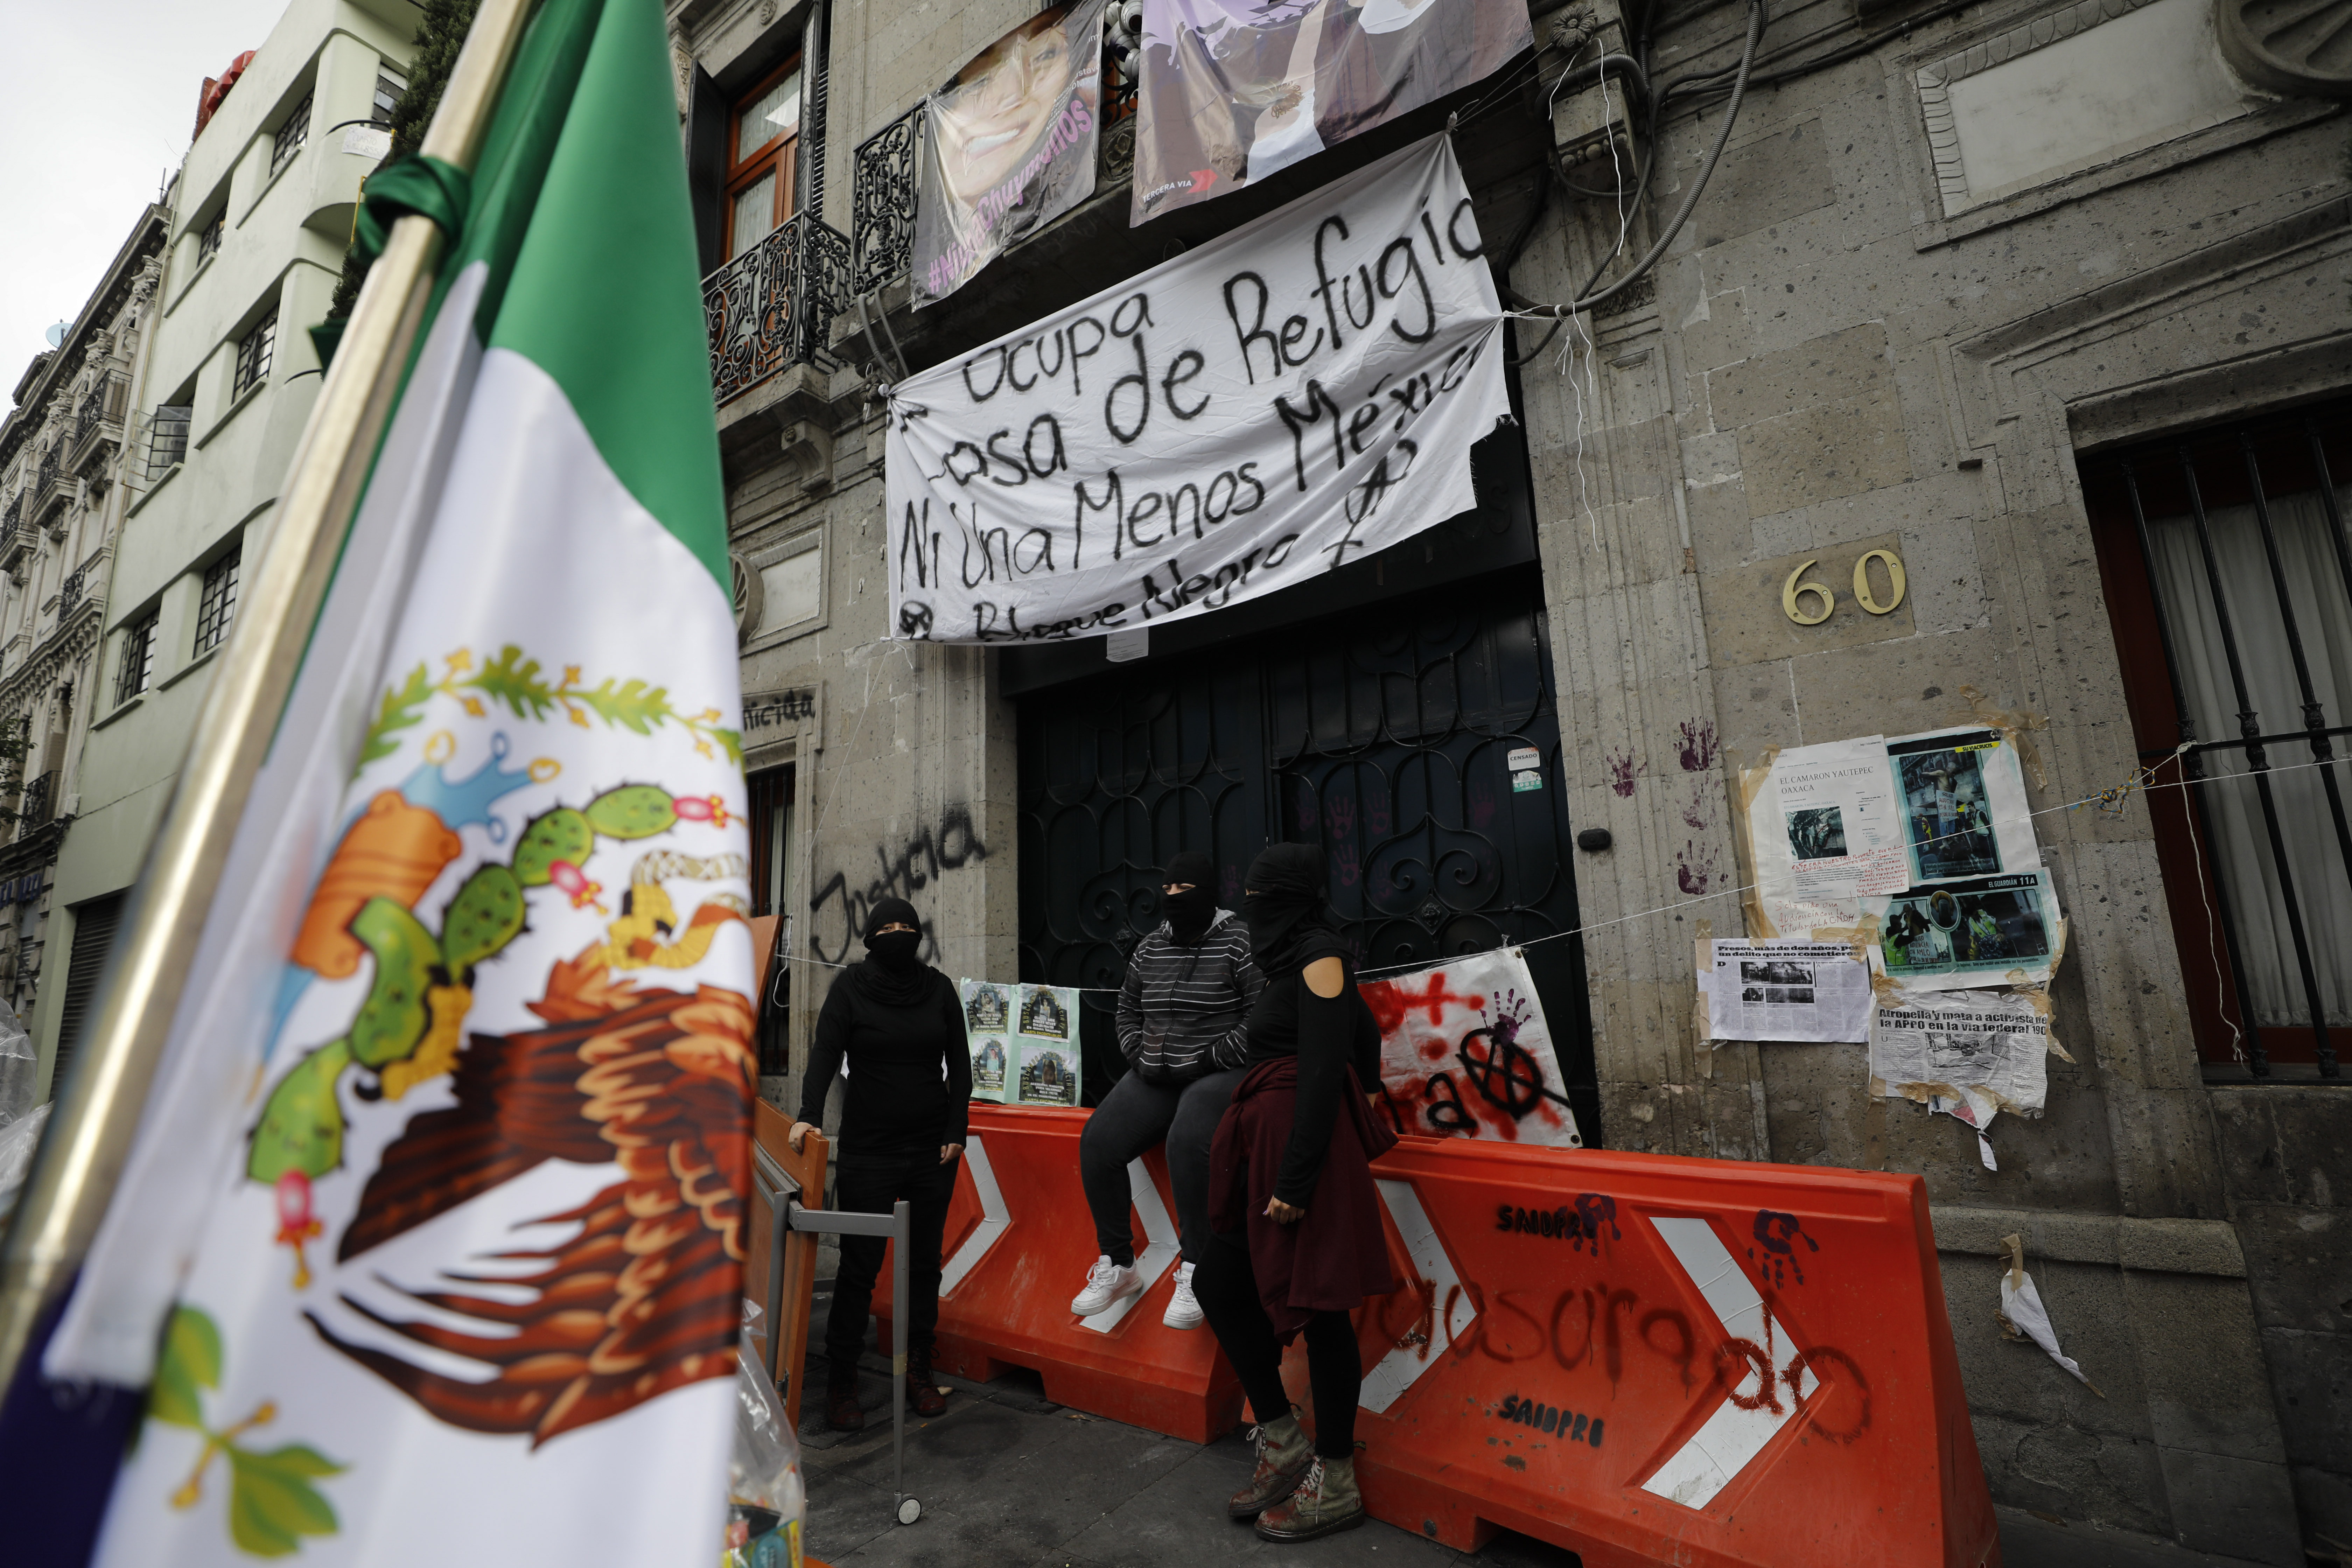 Growing more radical, Mexican feminists seize control of a federal building